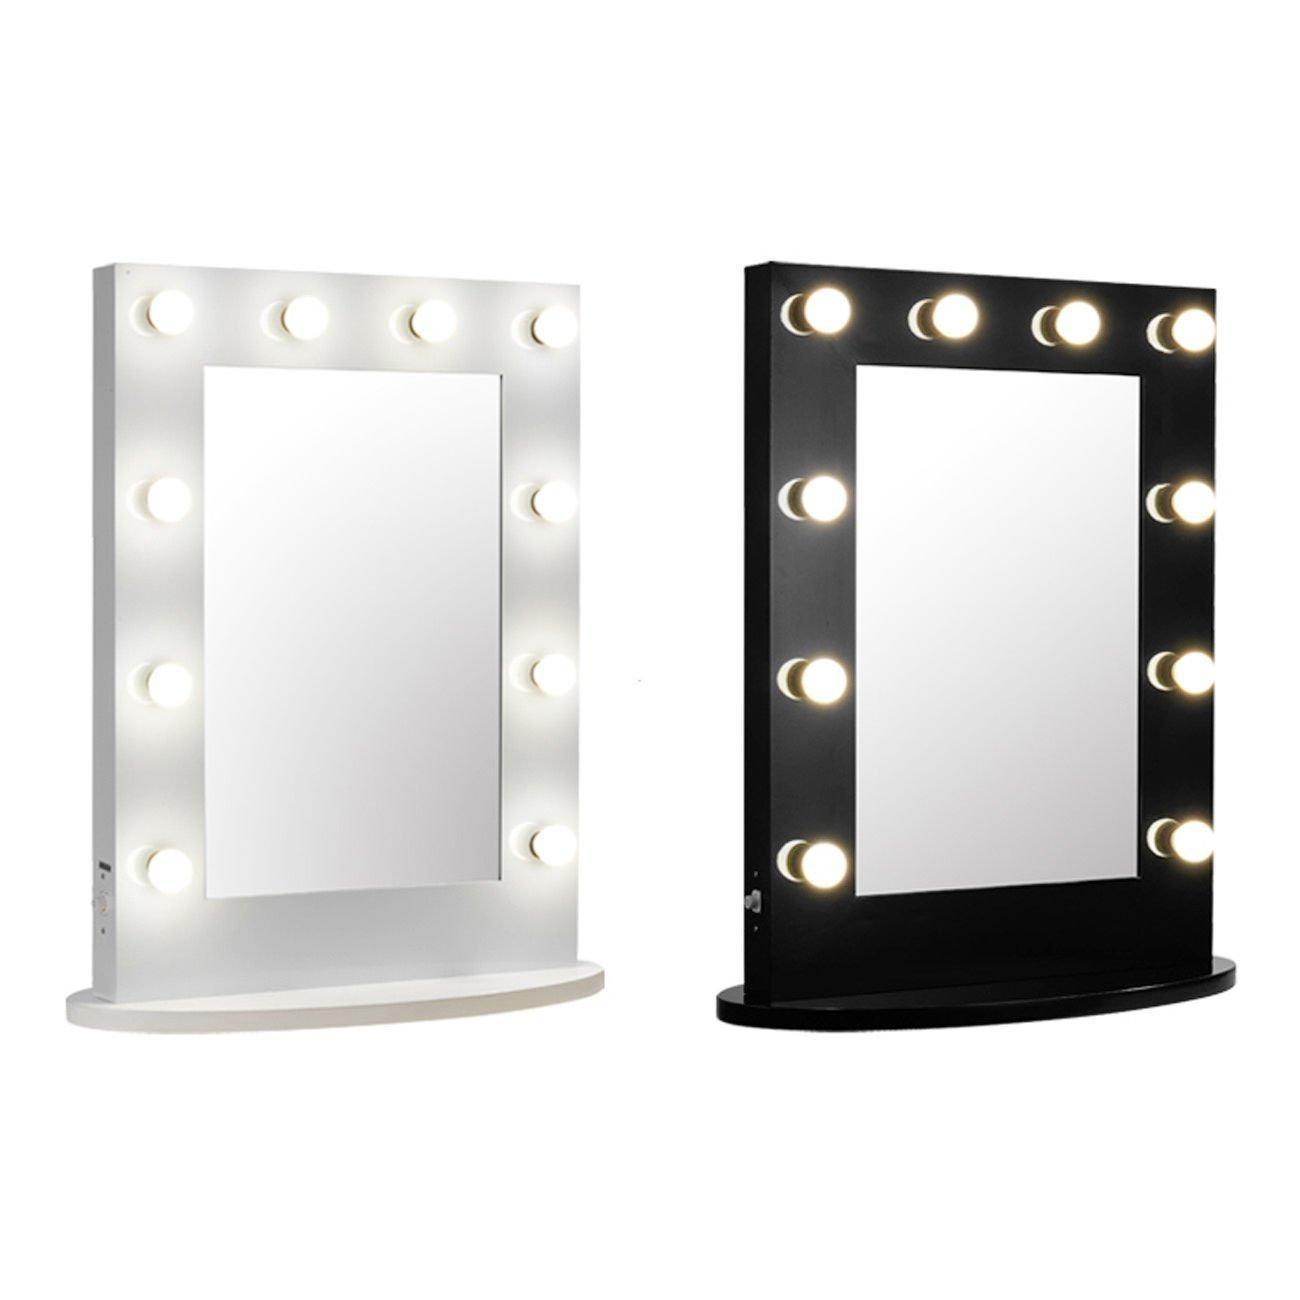 Wall Sconce Lighting Ideas : How to install Makeup mirror with lights wall mounted Warisan Lighting